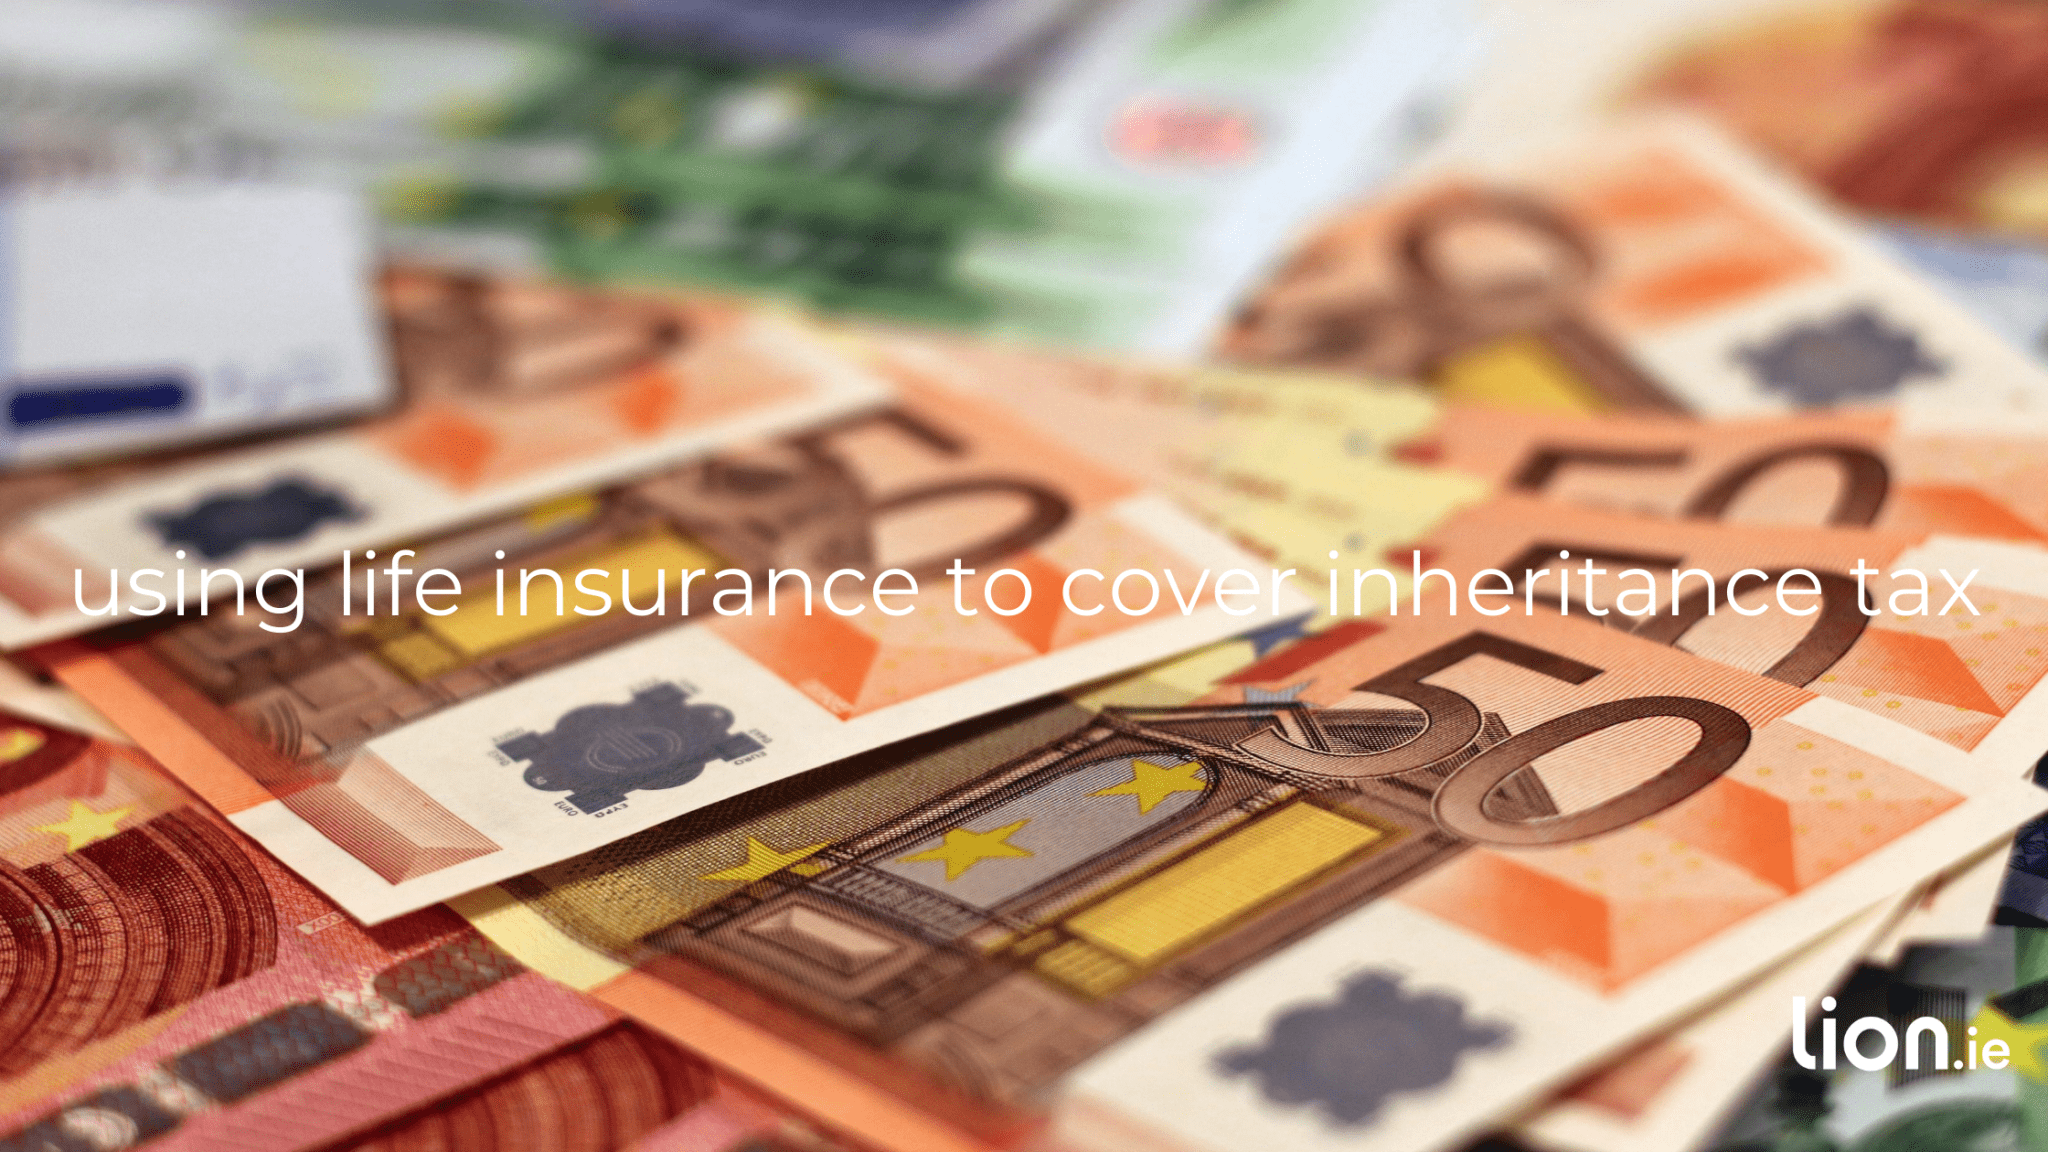 S72 life insurance to pay inheritance tax